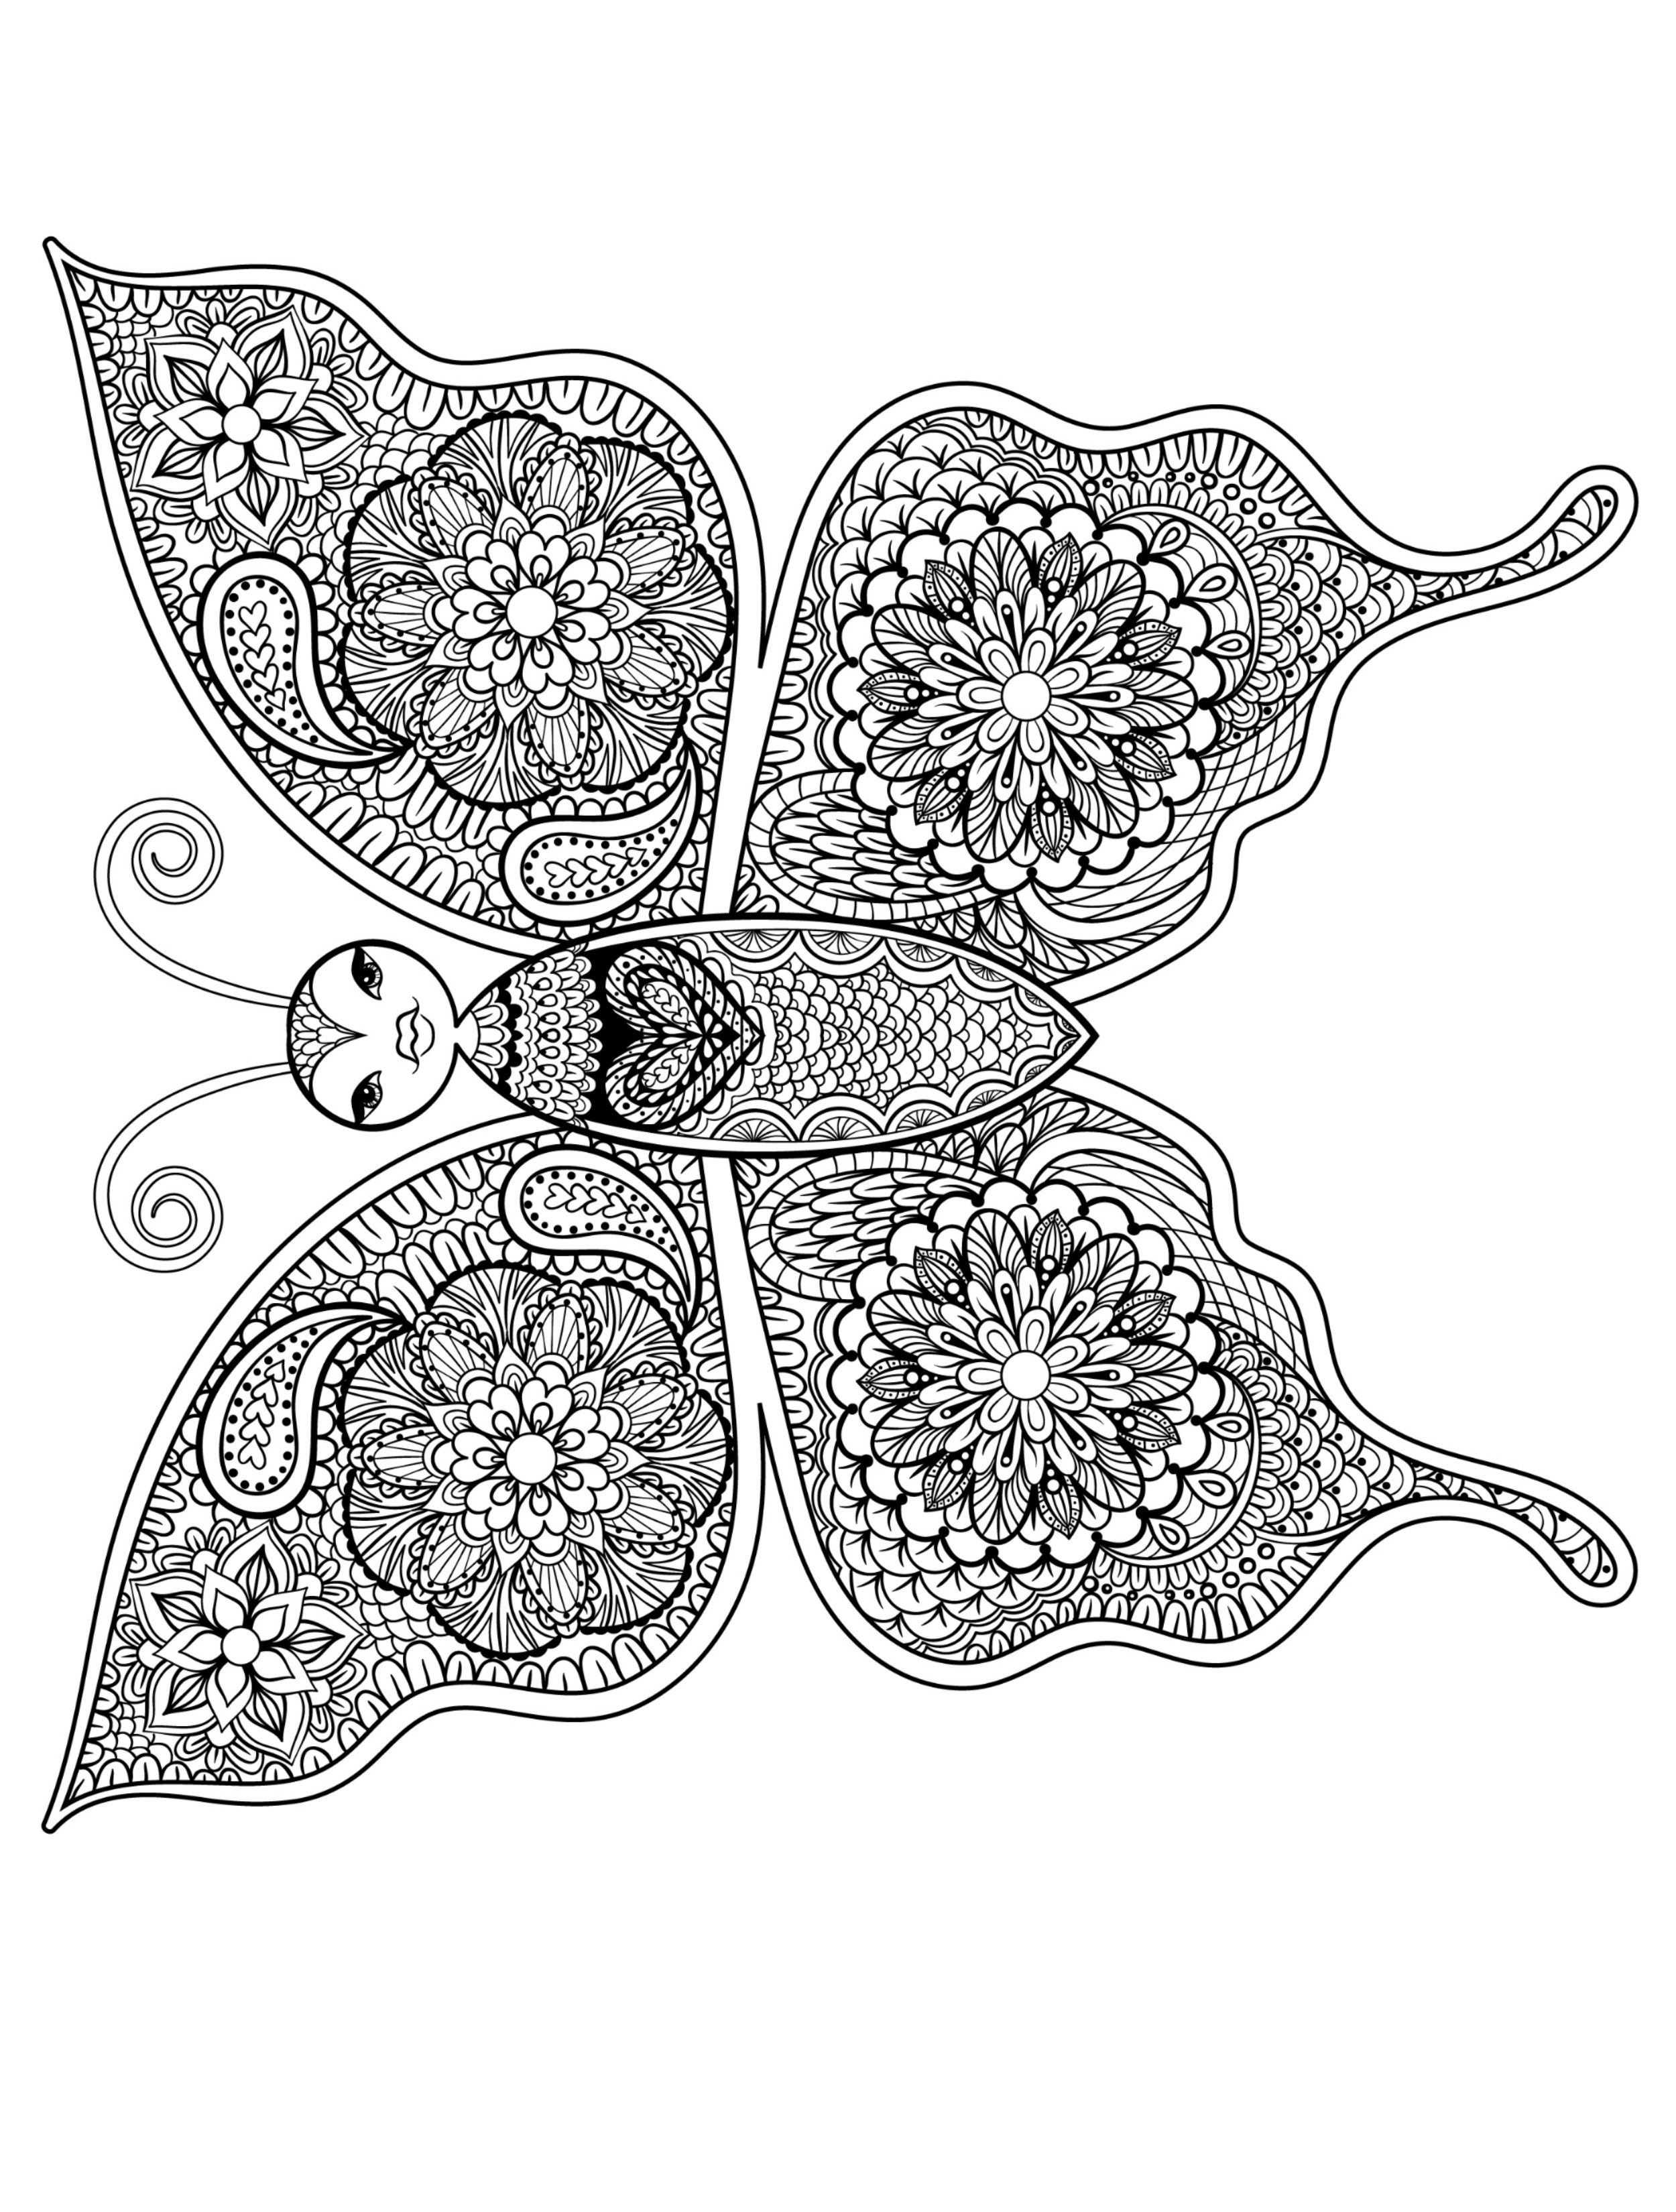 23 free printable insect animal adult coloring pages Coloring books for young adults